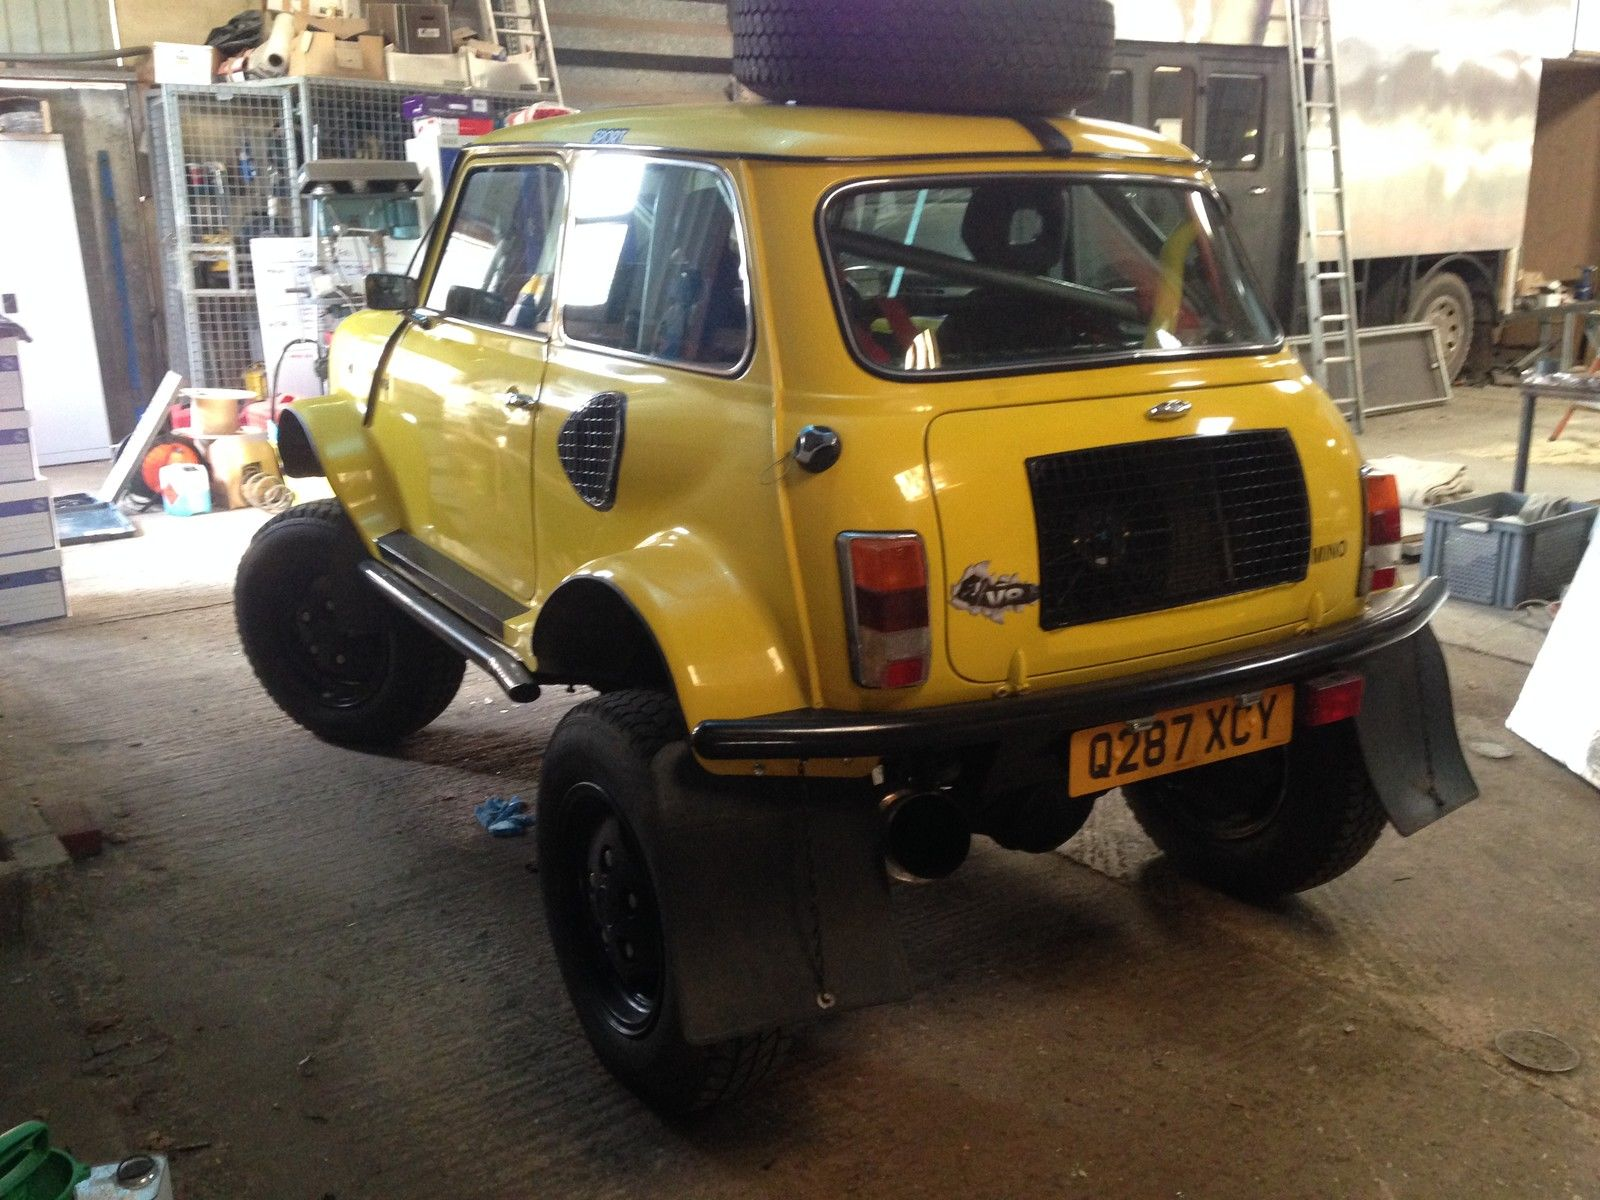 Mini Body With Range Rover Chassis And V8 Makes For An Extreme